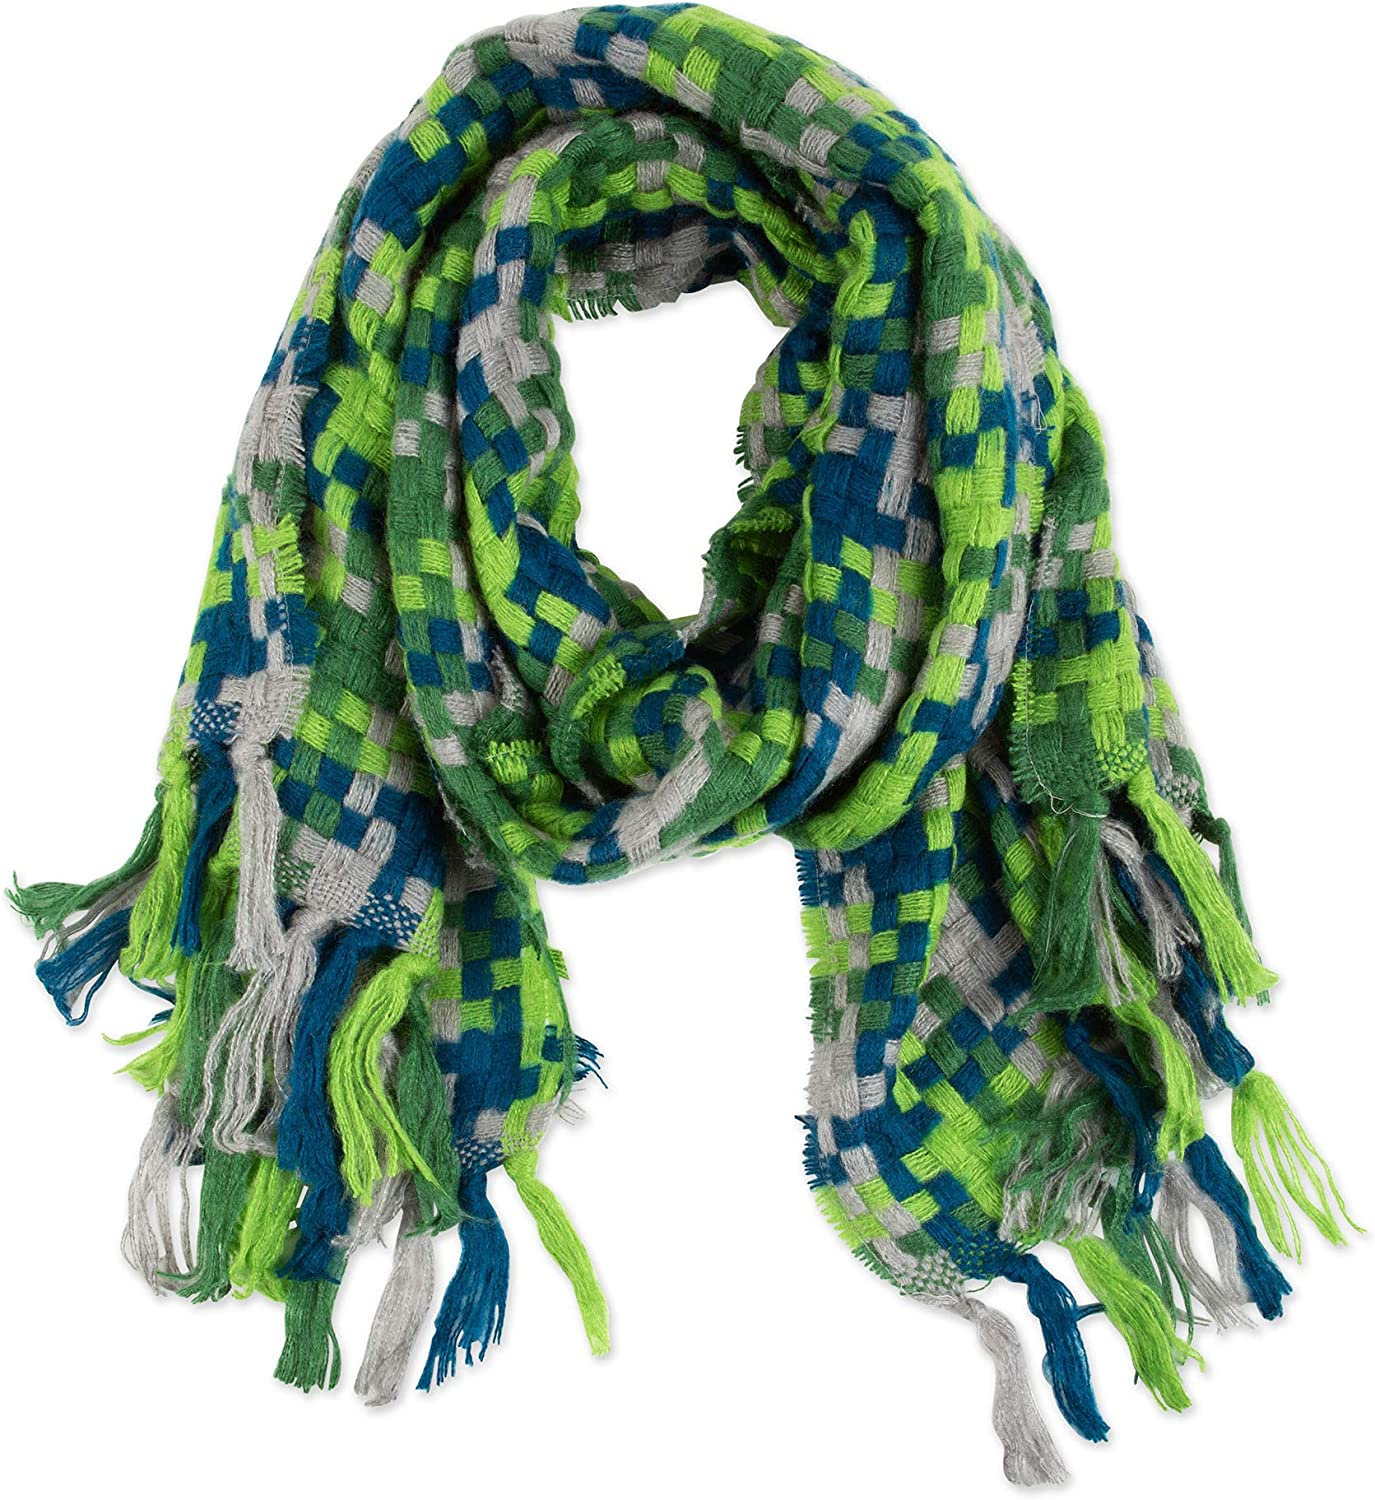 Tickled Pink Fun, Trendy, Winter Fashion Scarf Green and Blue Chunky Knit Acrylic - One Size Fits All